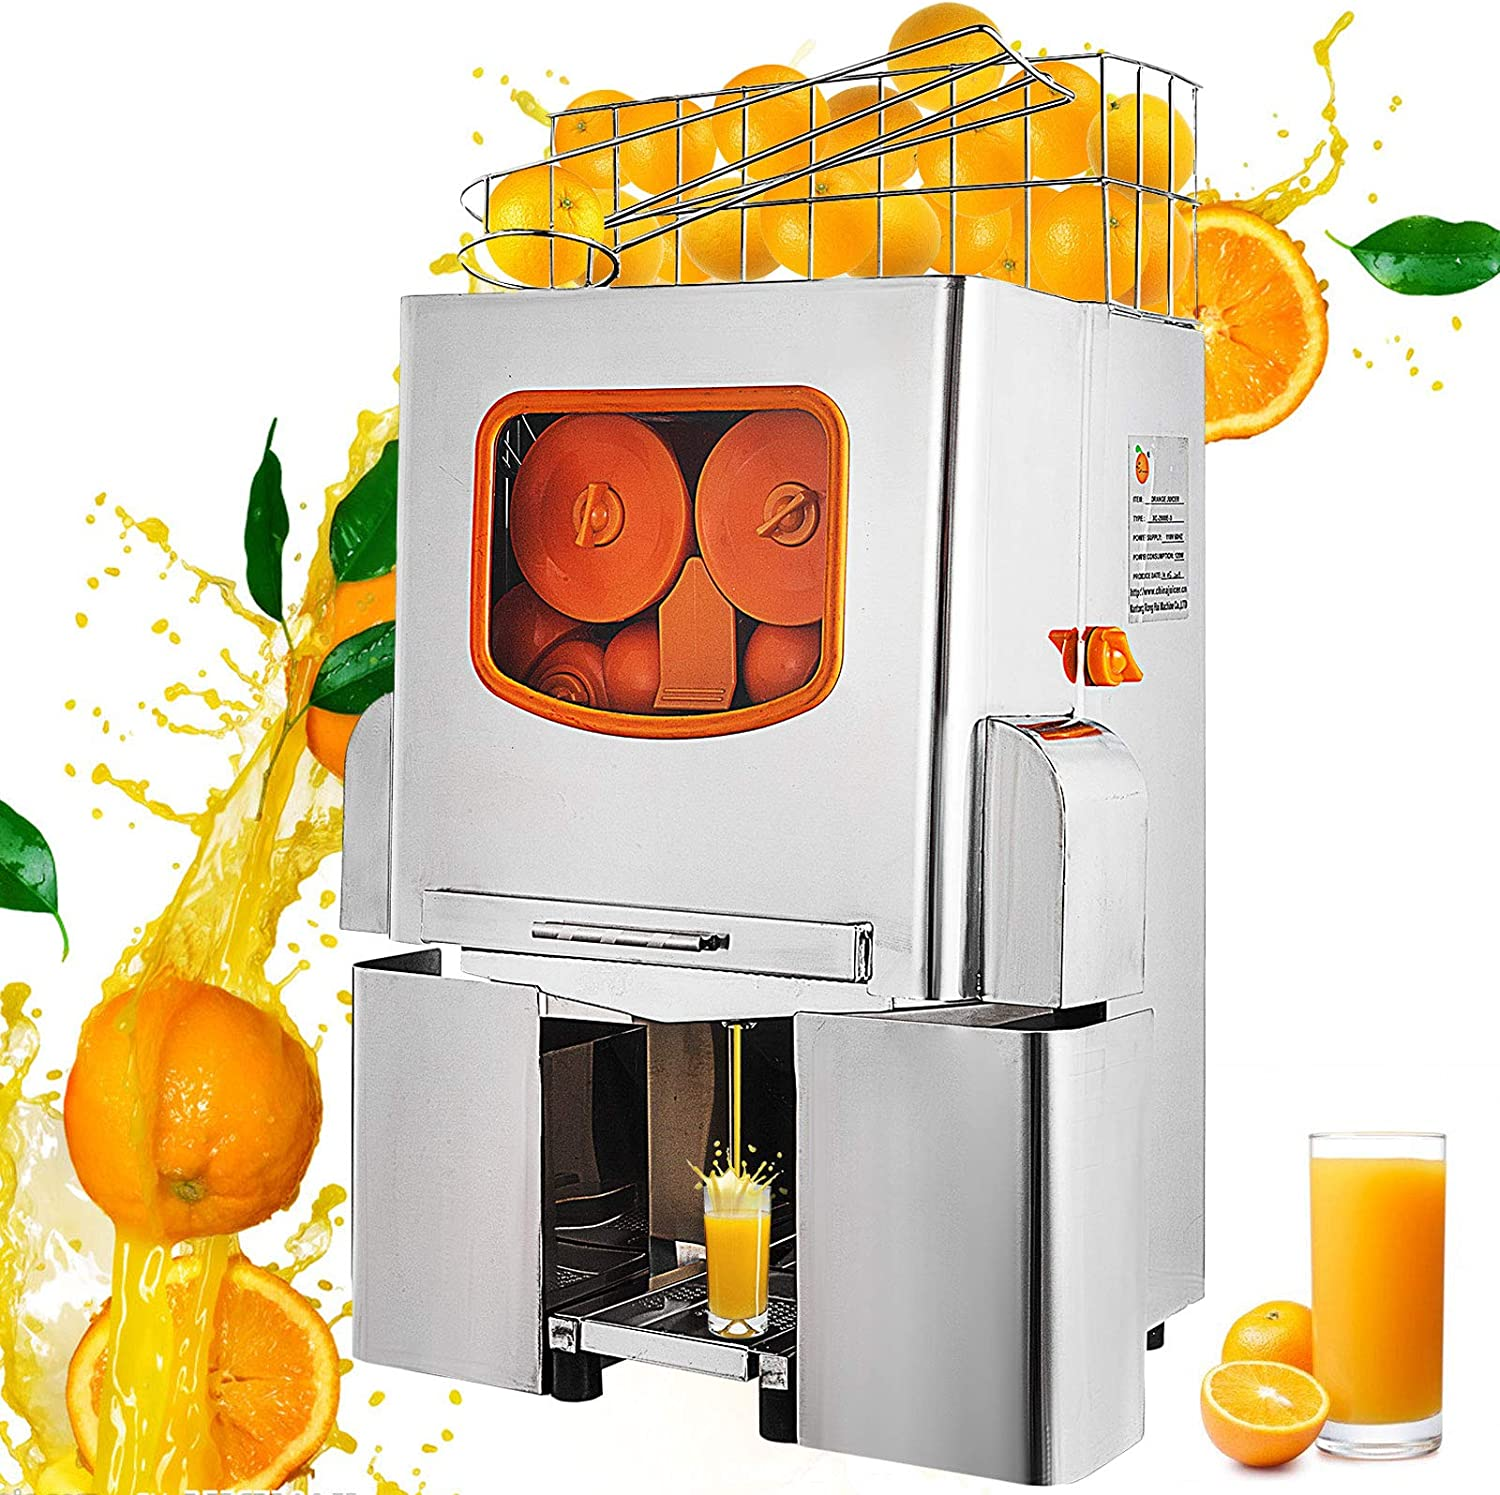 VBENLEM 110V Electric Orange Juicer Commercial Squeezer Machine Lemon Automatic Auto Feed Supermarkets 22-30 Per Minute 304 Tank+Stainless Steel Cover Perfect for Drink Bar and Home